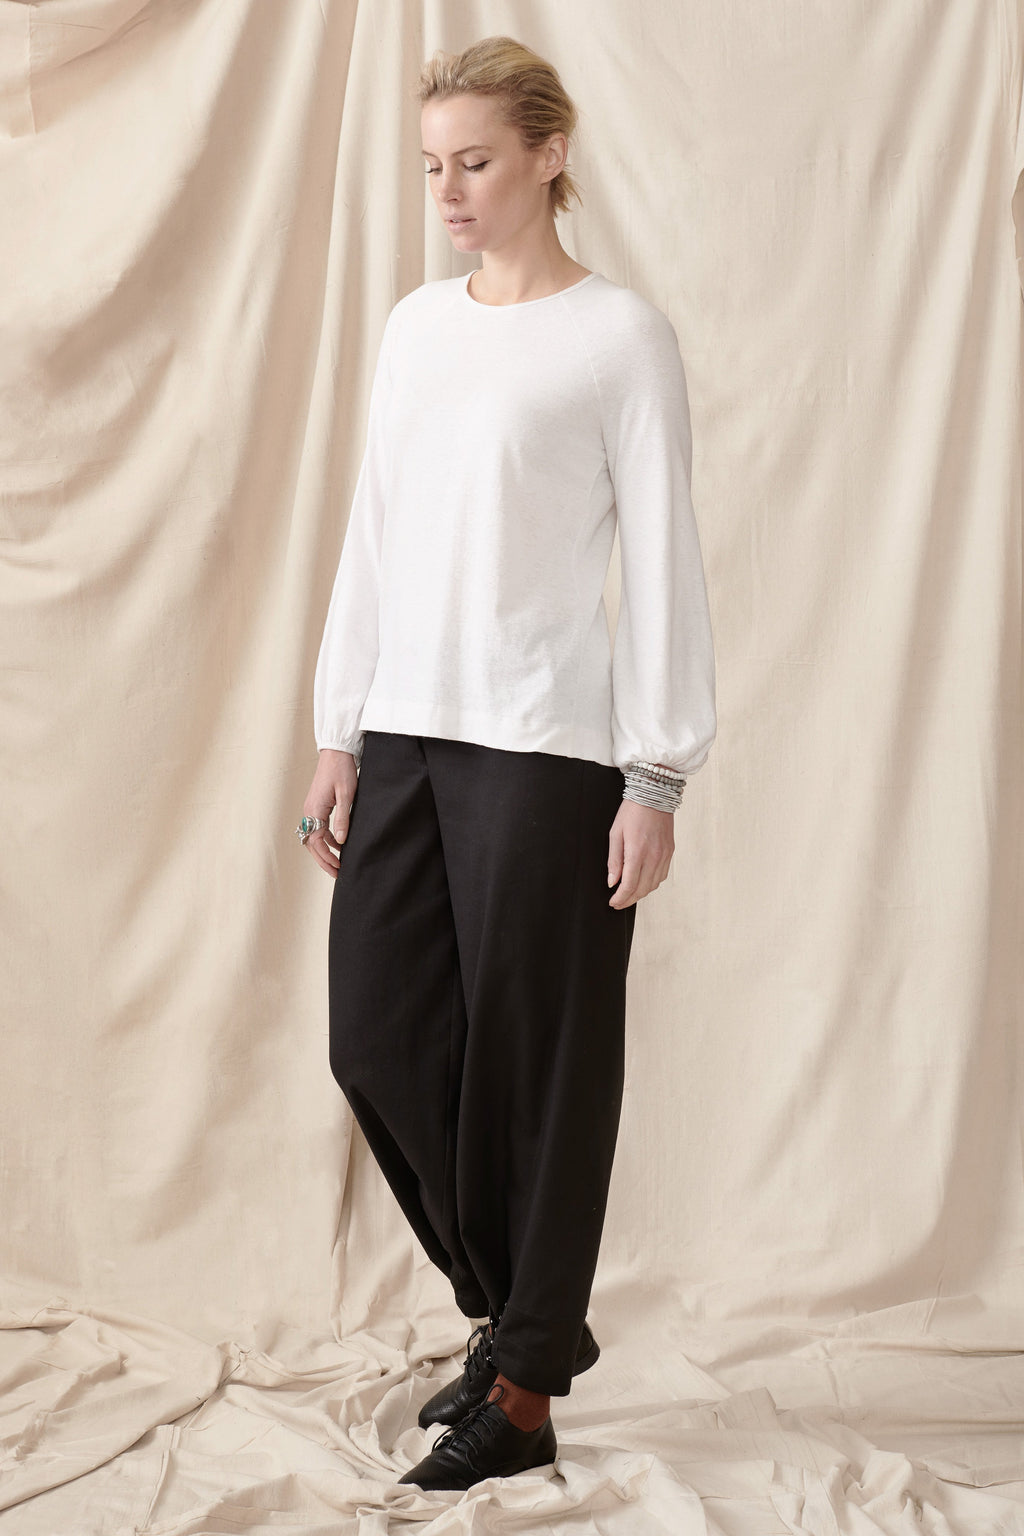 Ash Top in Hemp Organic Cotton Knit Jumpers The Fashion Advocate ethical Australian fashion designer boutique Melbourne sustainable clothes